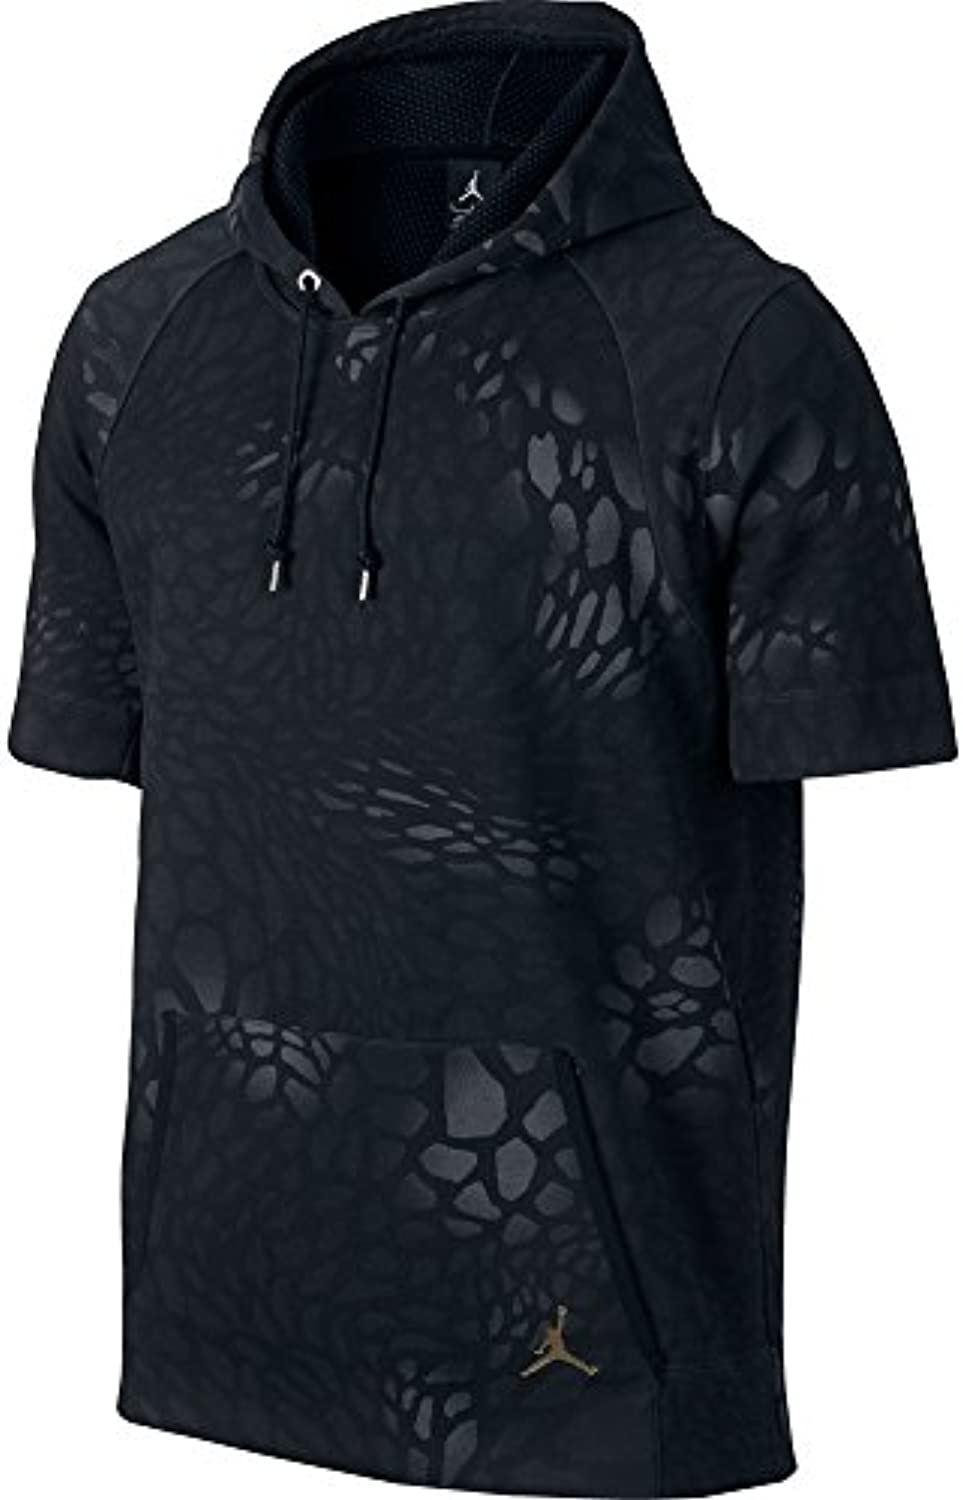 Jordan XXX Blackcat Short Sleeve Men's Hoodie Black/Metallic Cacao 706565 010